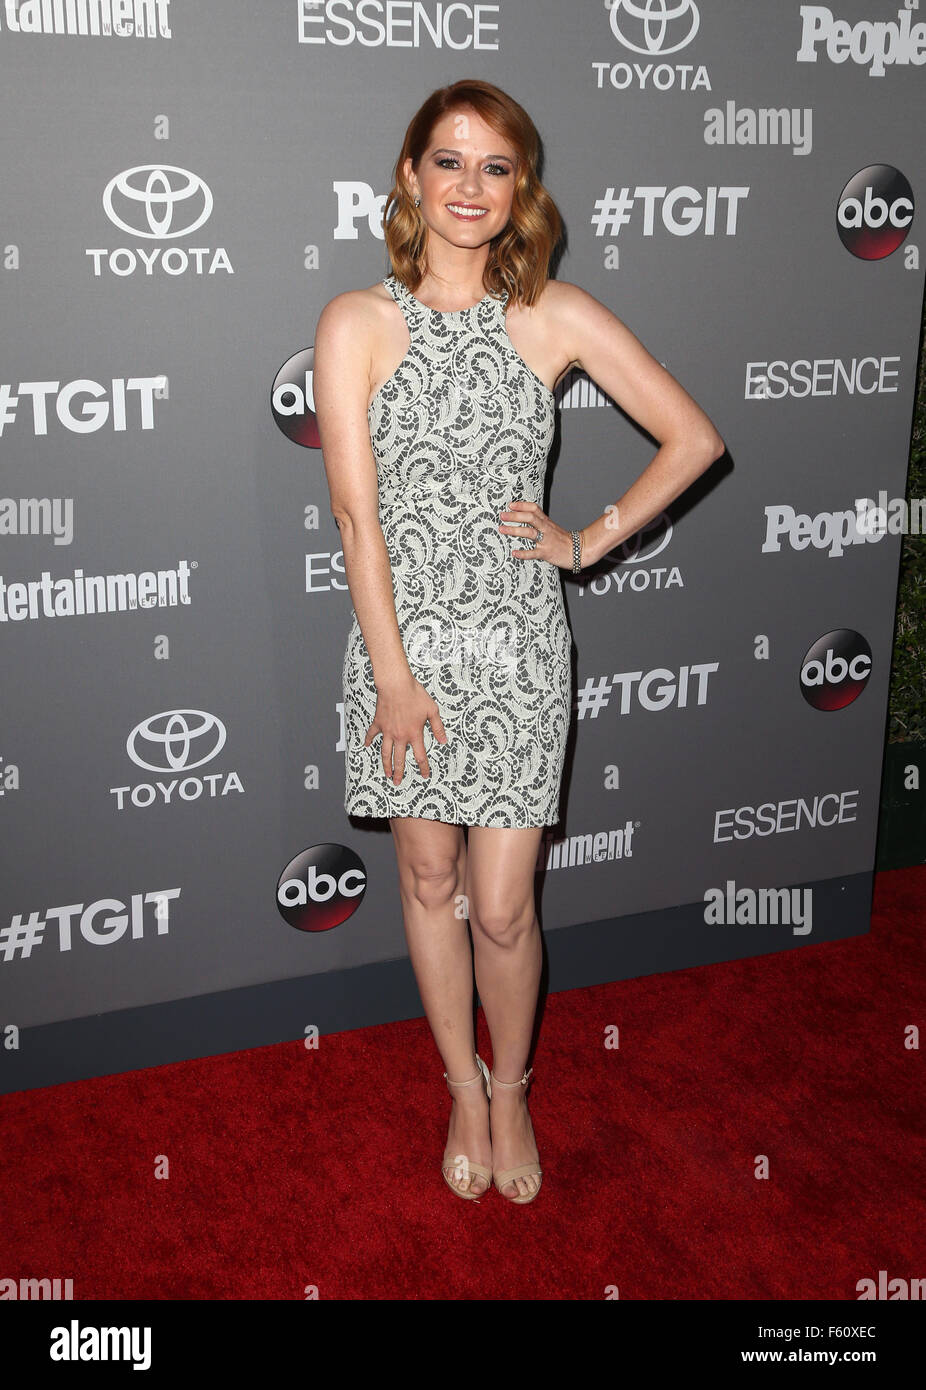 ABC's TGIT premiere event - Arrivals  Featuring: Sarah Drew Where: Los Angeles, California, United States When: Stock Photo